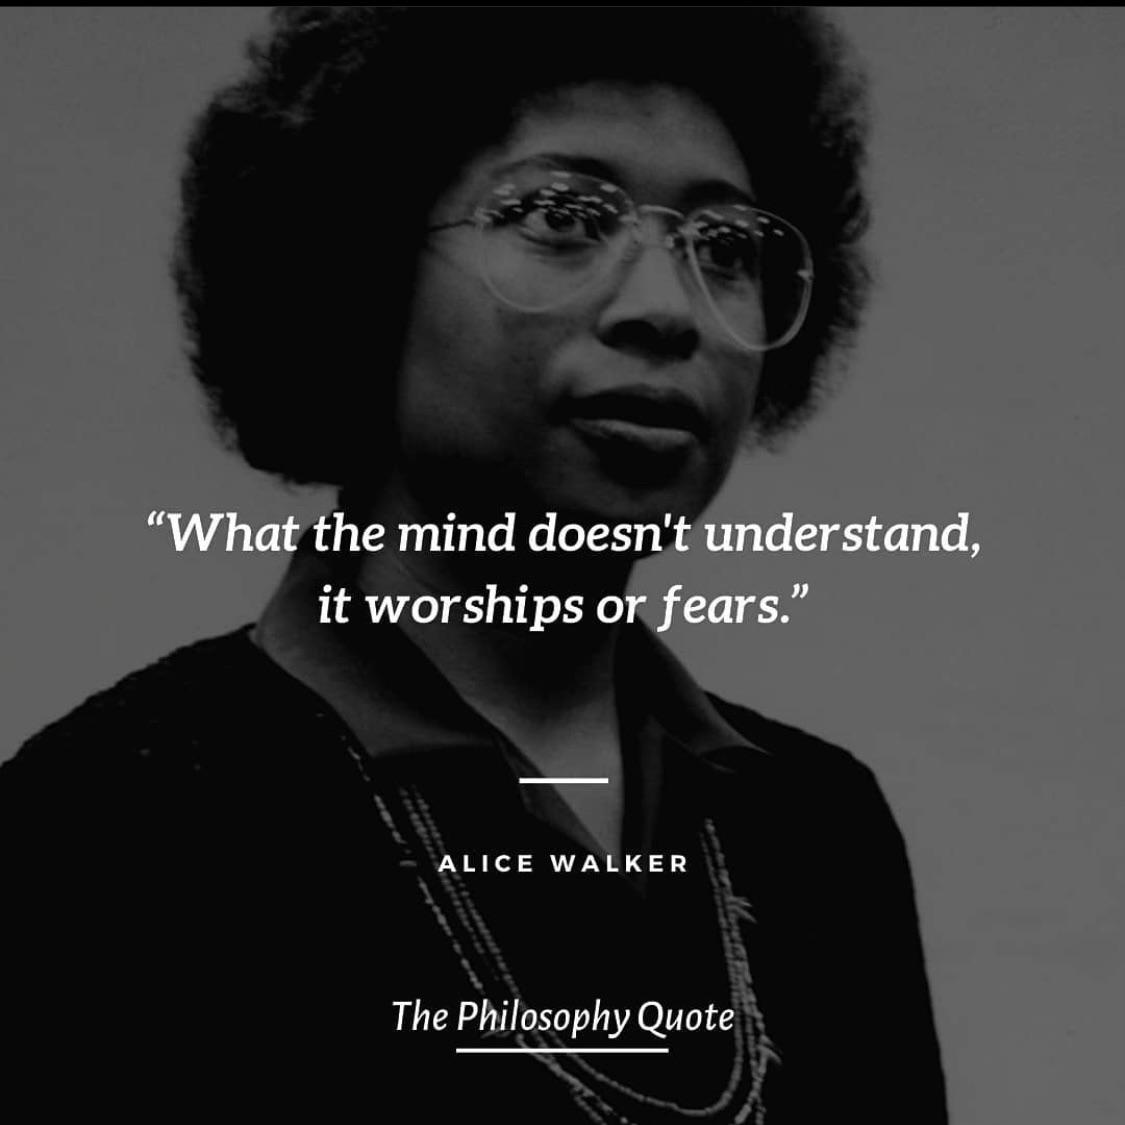 """What the mind doesn't understand, it worships or fears"" – Alice walker [1125 x 1125]"